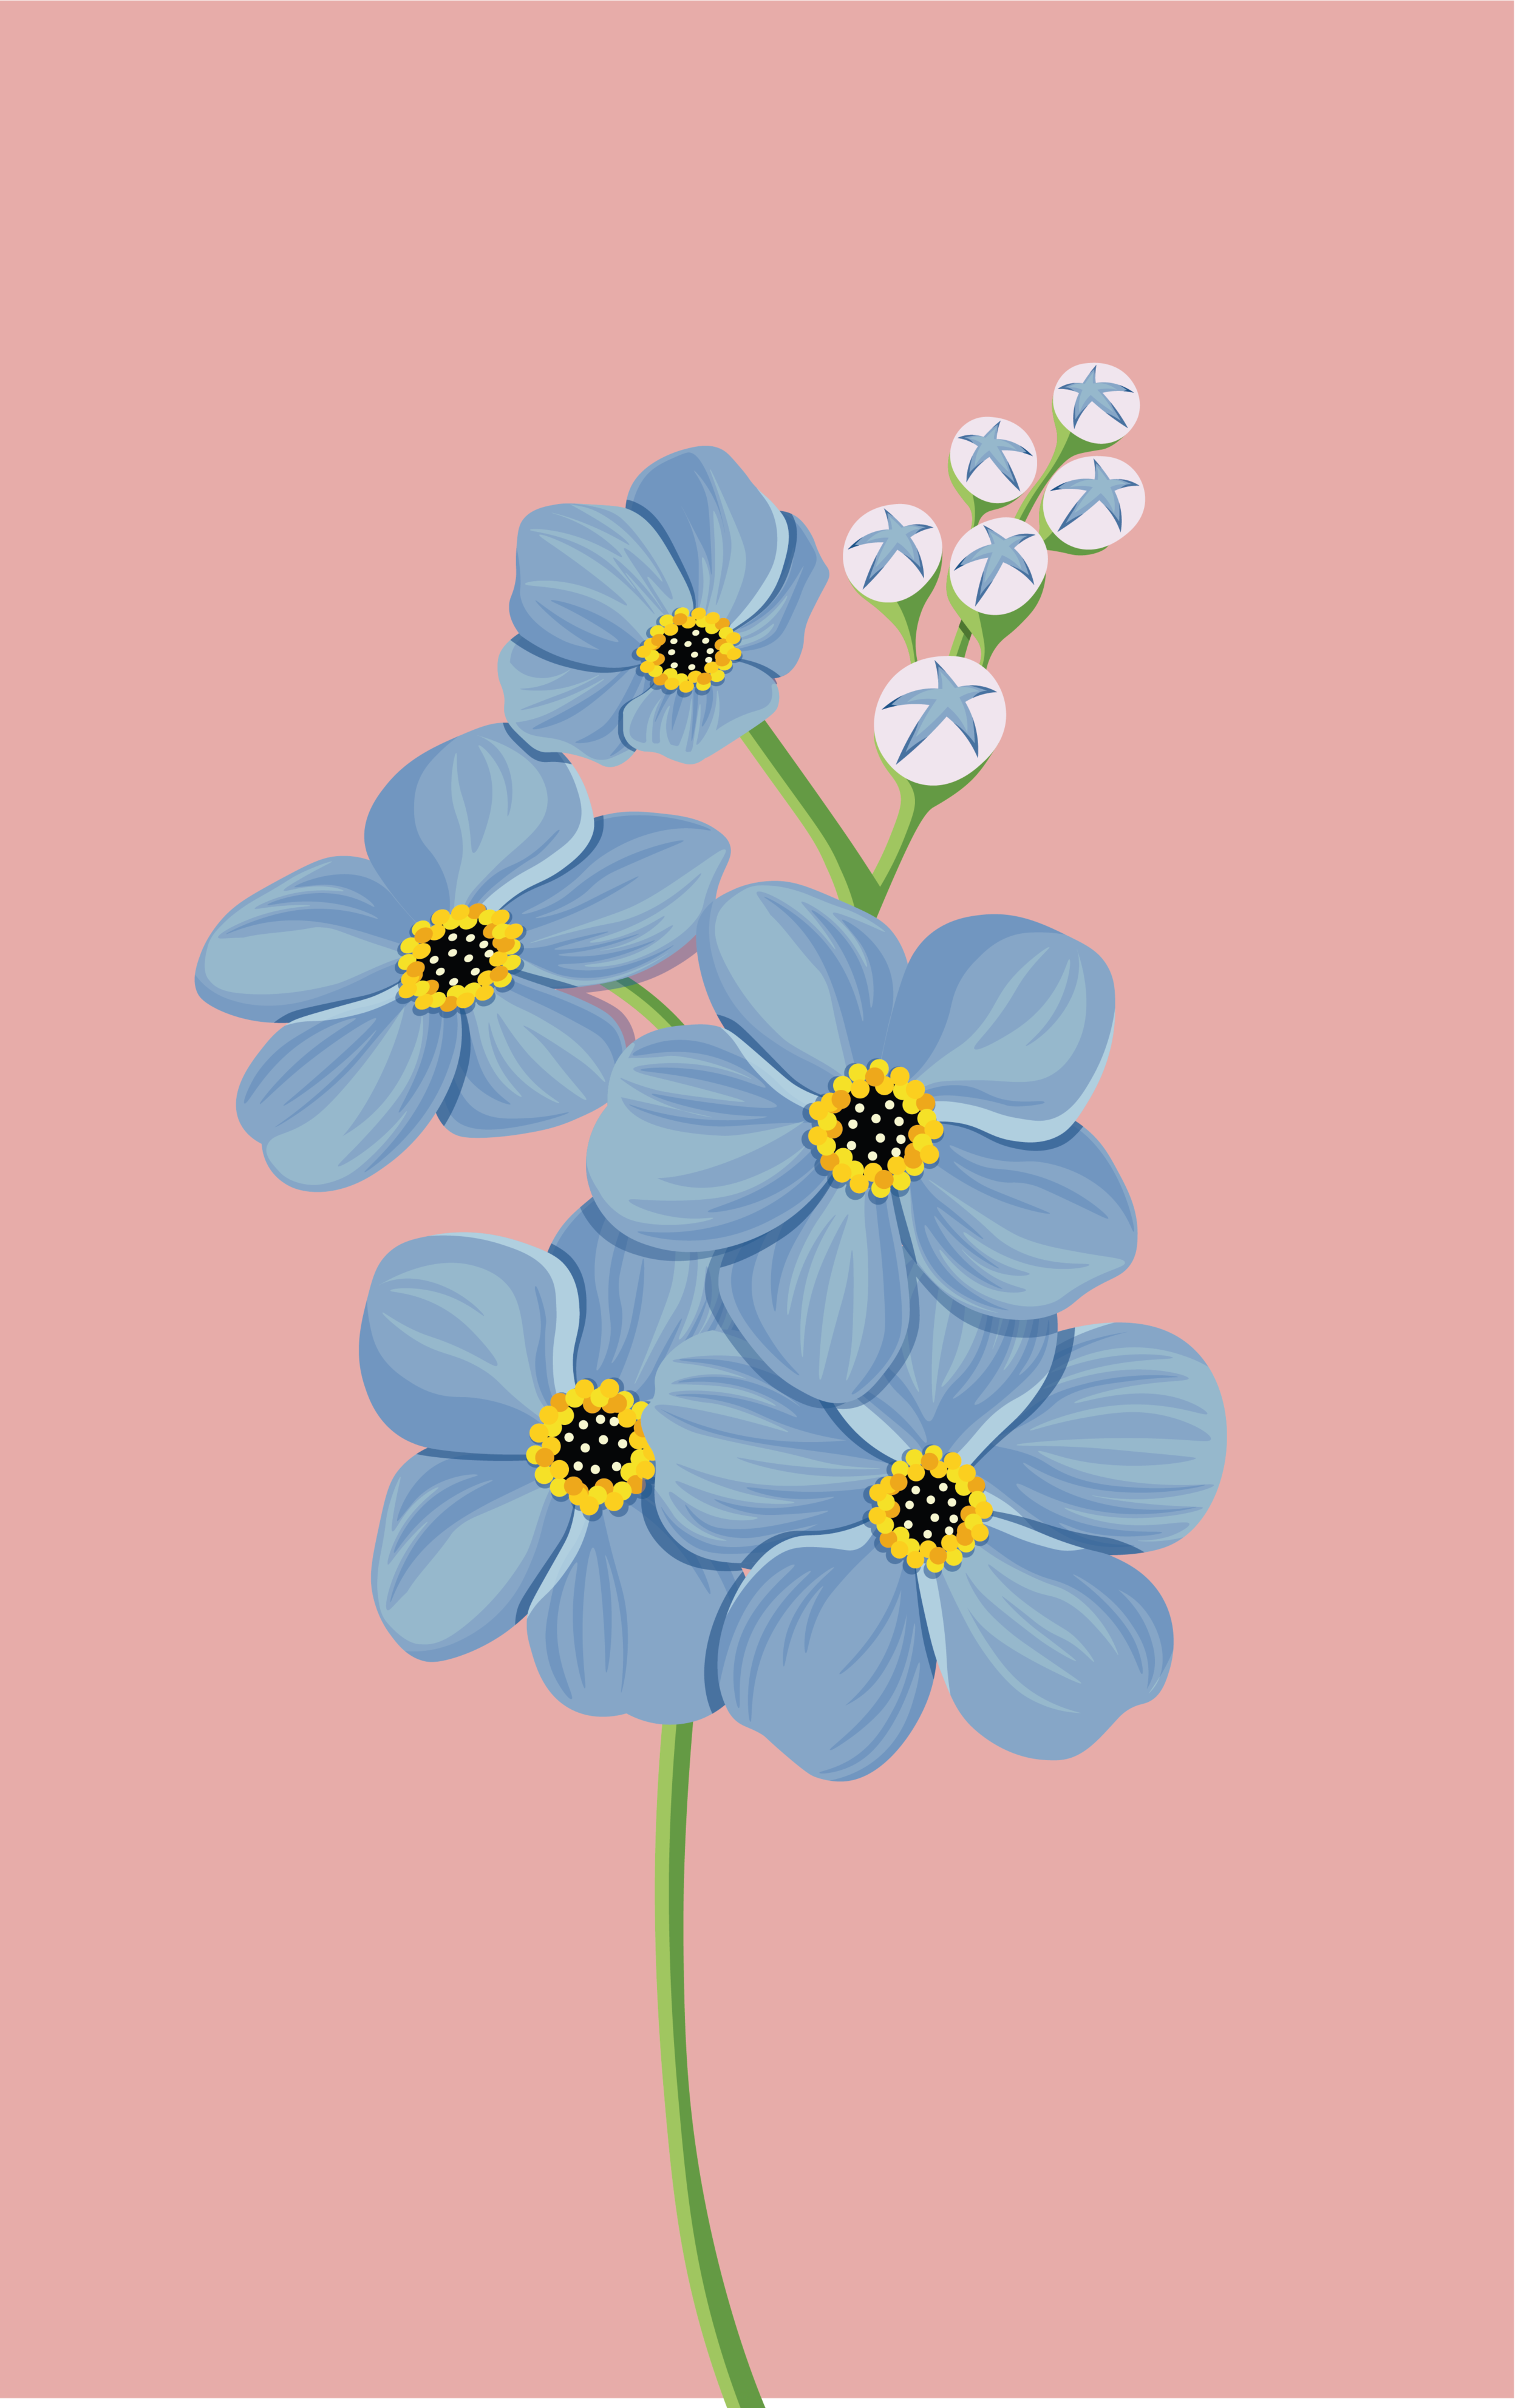 Flower_CARD_Tavola disegno 1.png